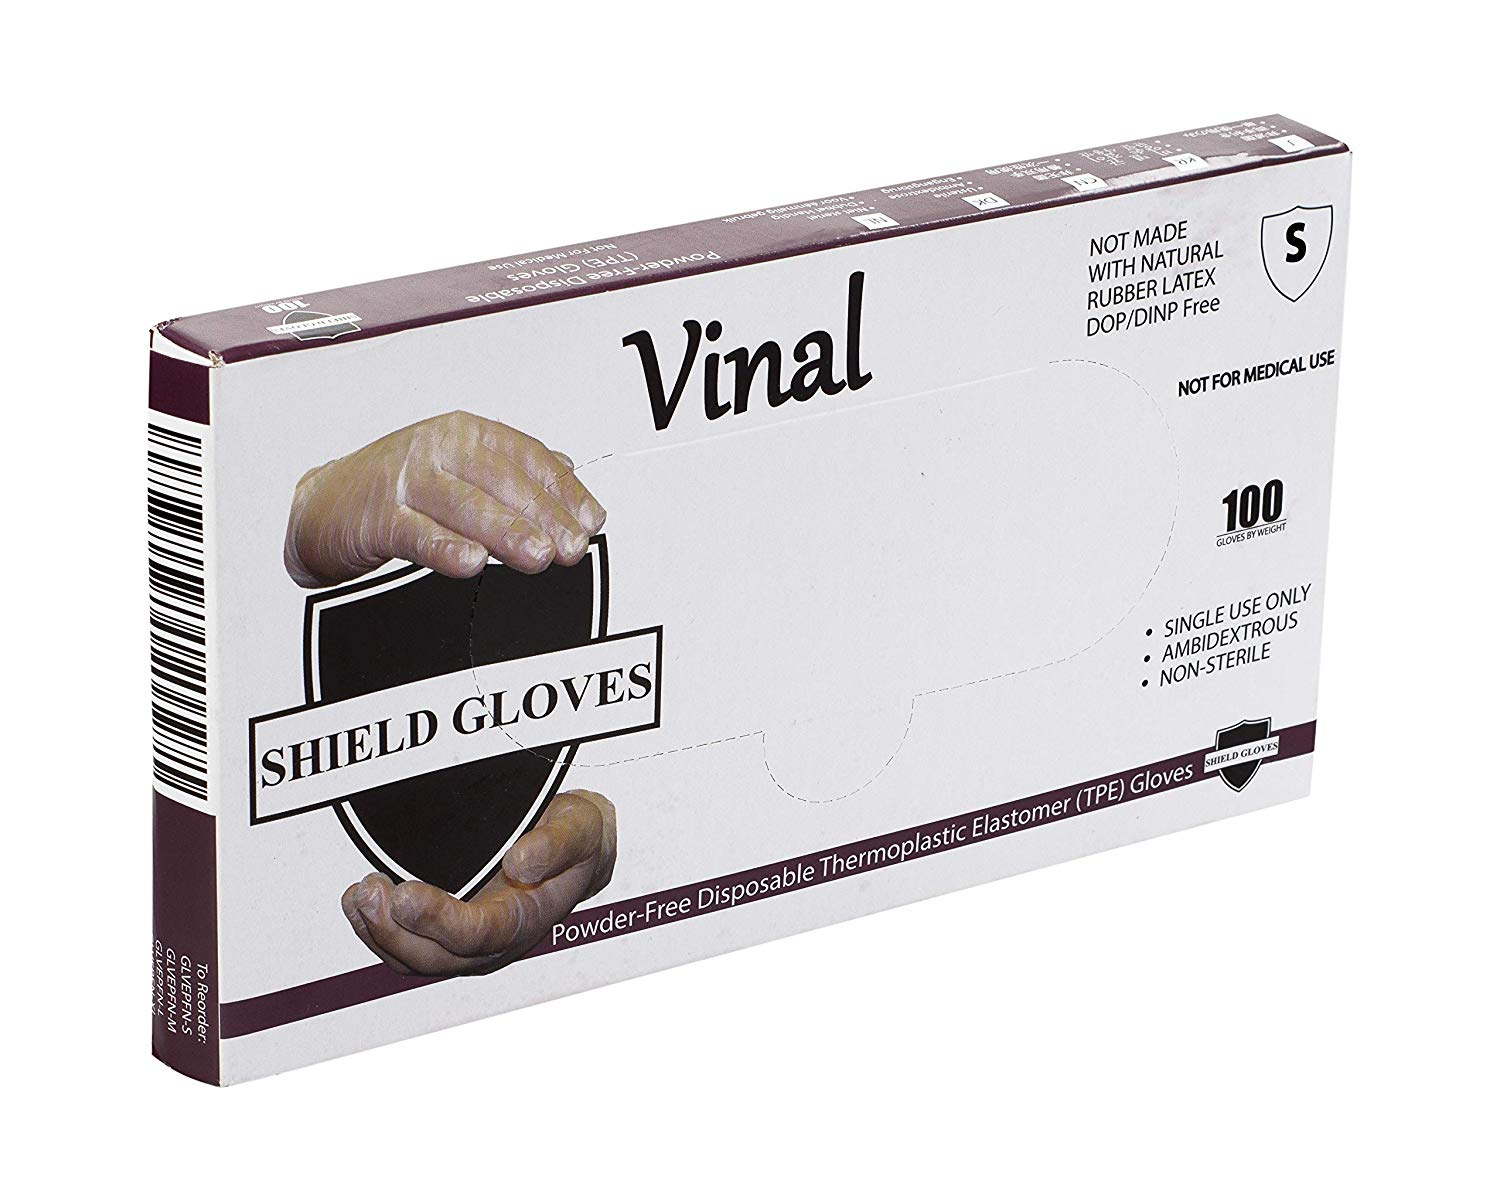 Stretch Vinal Non Examination Shield Gloves, Powder-Free, Clear - Small, 1.5 mil